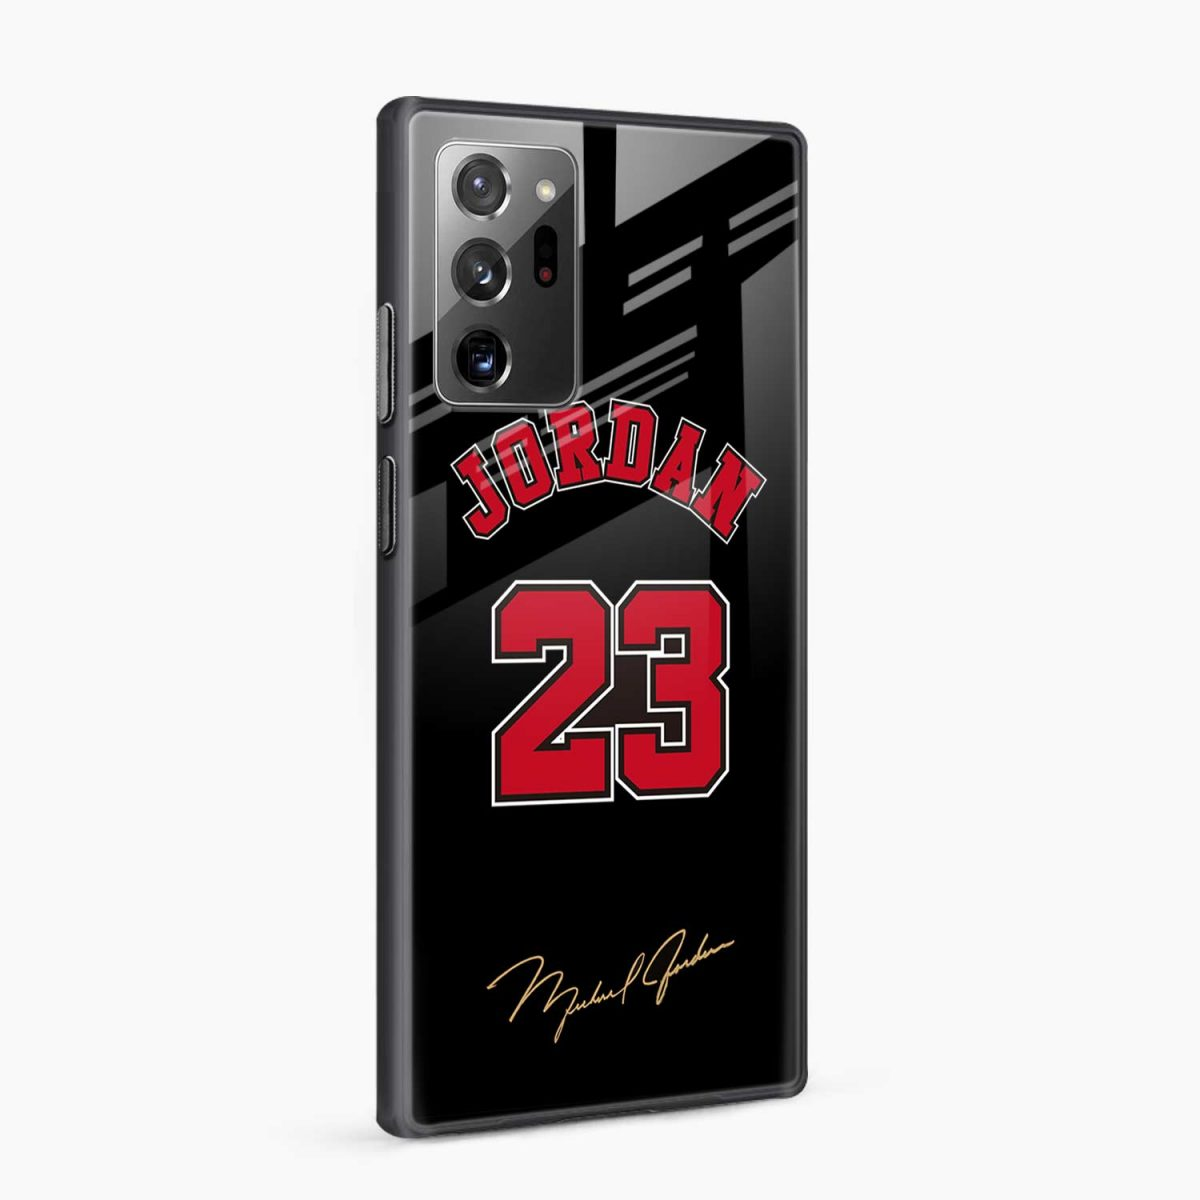 jordan side view samsung galaxy note20 ultra back cover